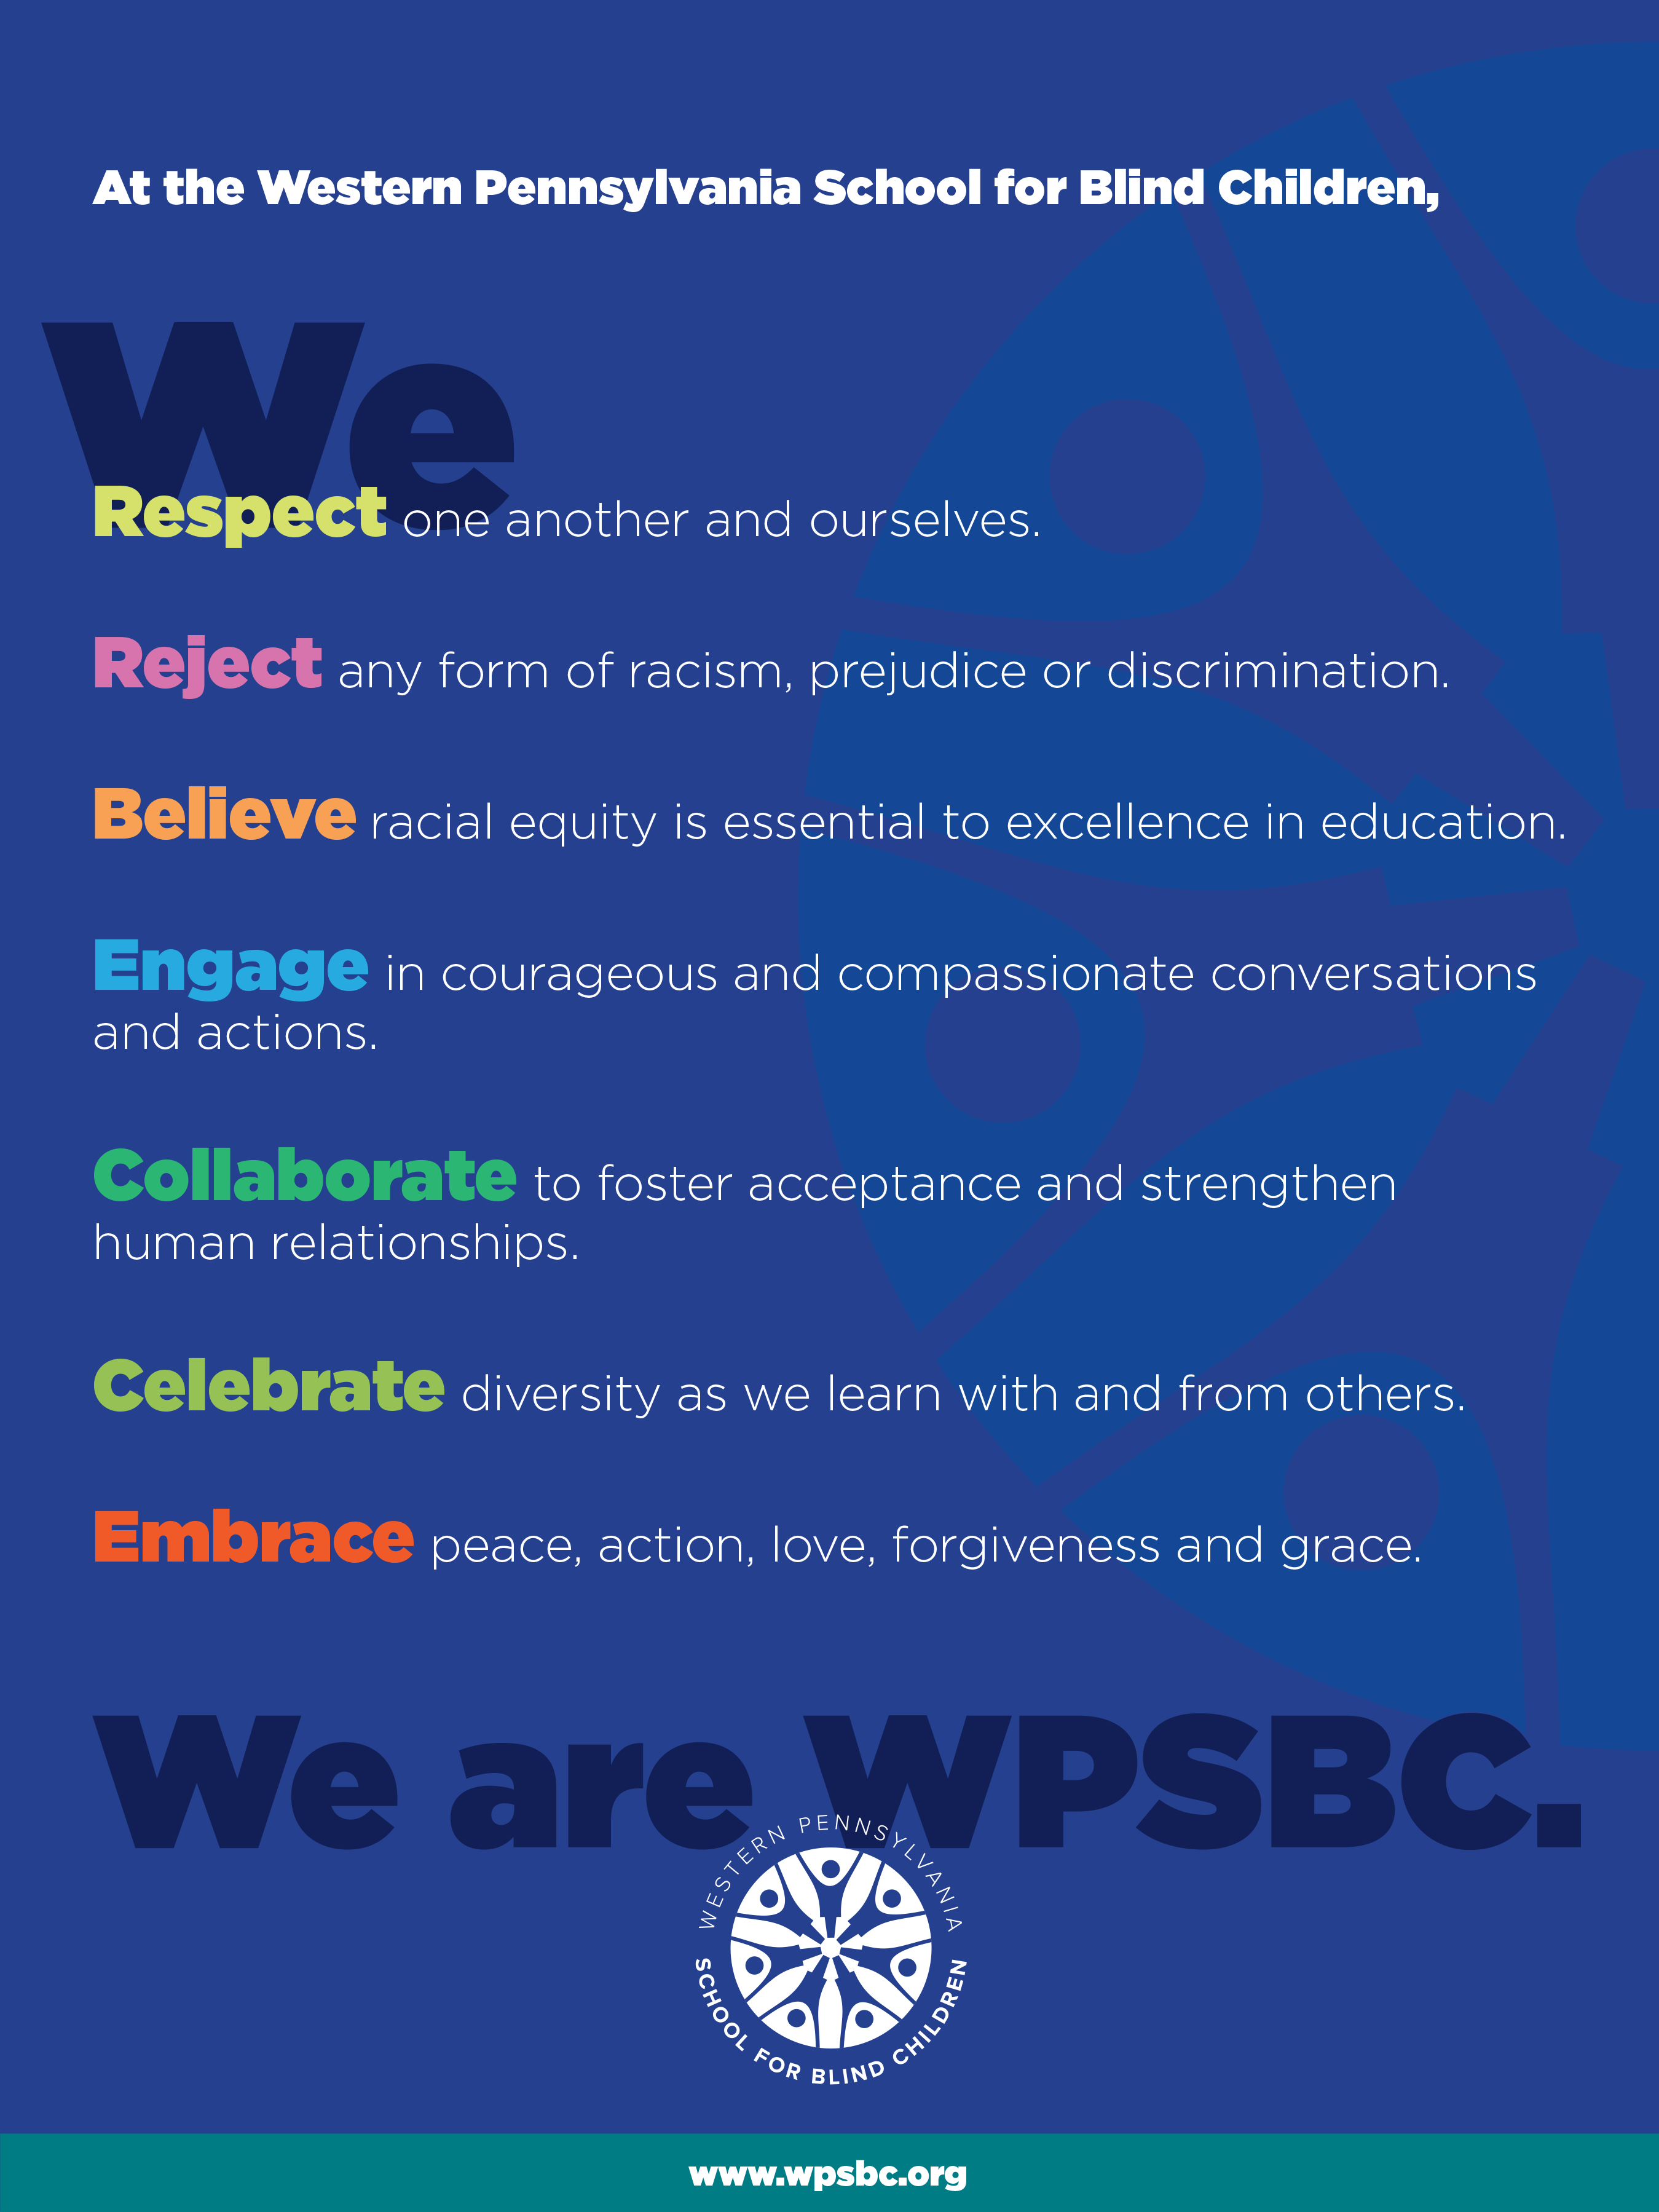 """At the Western Pennsylvania School for Blind Children, we respect one another and ourselves. We reject any form of racism, prejudice or discrimination. We believe racial equality is essential to excellence in education. We engage in courageous and compassionate conversations and actions. We collaborate to foster acceptance and strengthen human relationships. We celebrate diversity as we learn with and from others. We embrace peace, action, love, forgiveness and grace. We are WPSBC."""